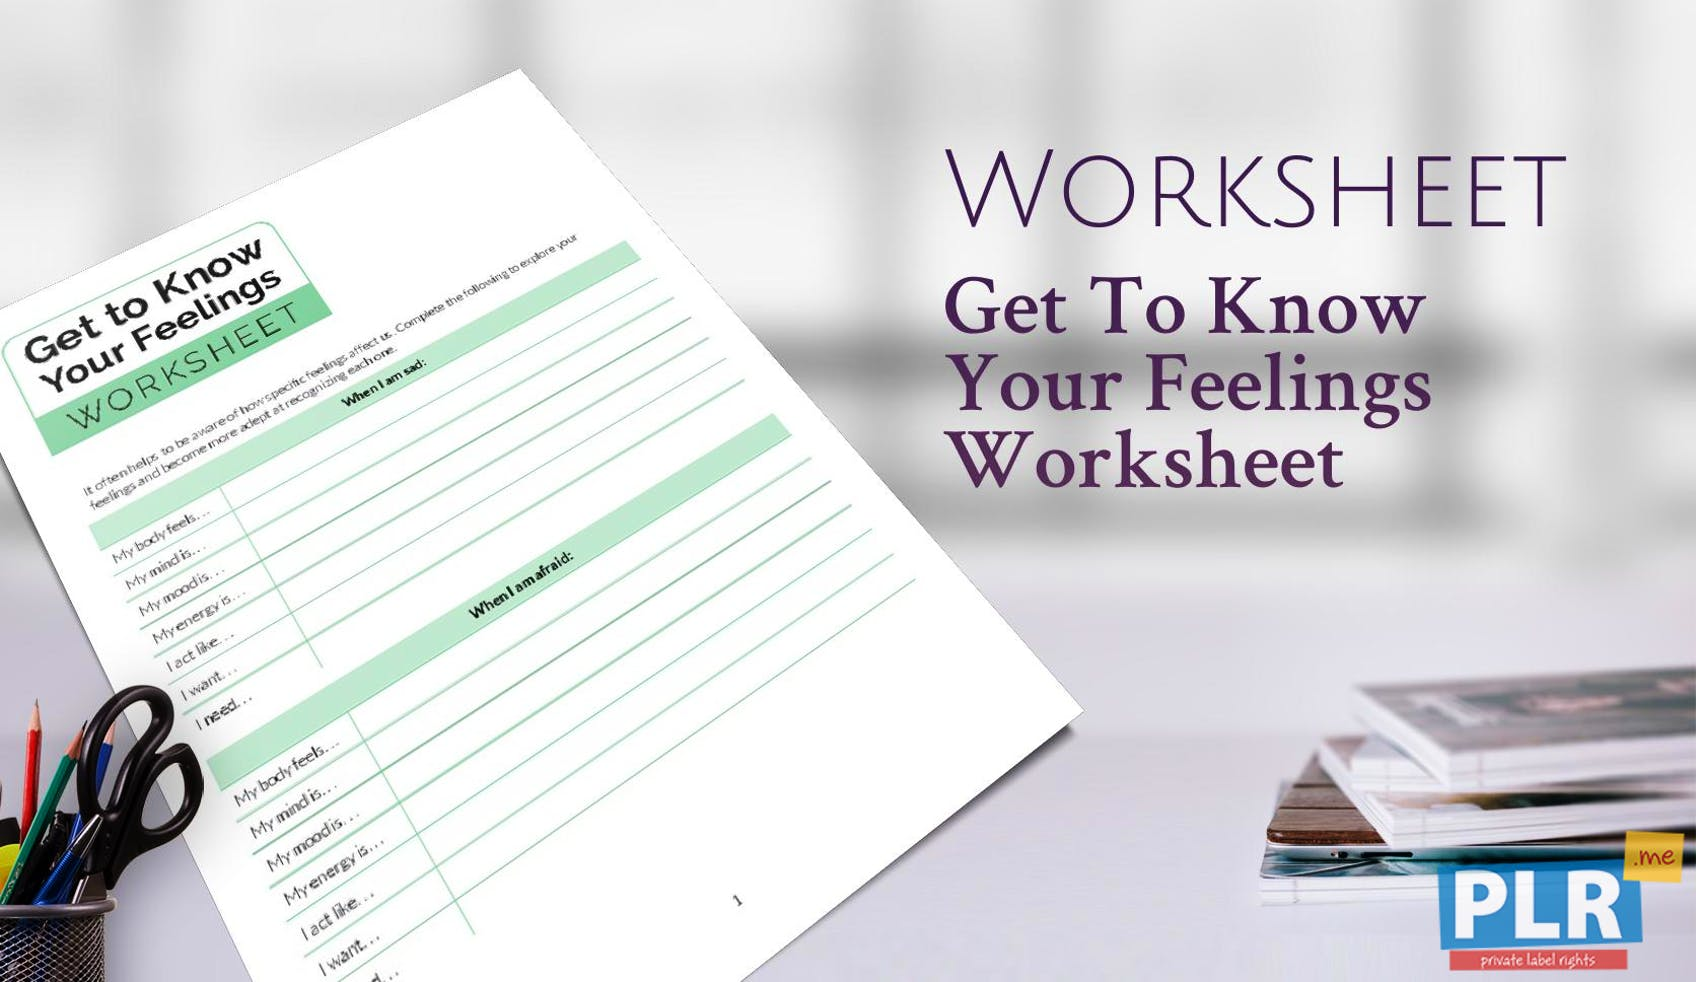 Get To Know Your Feelings Worksheet